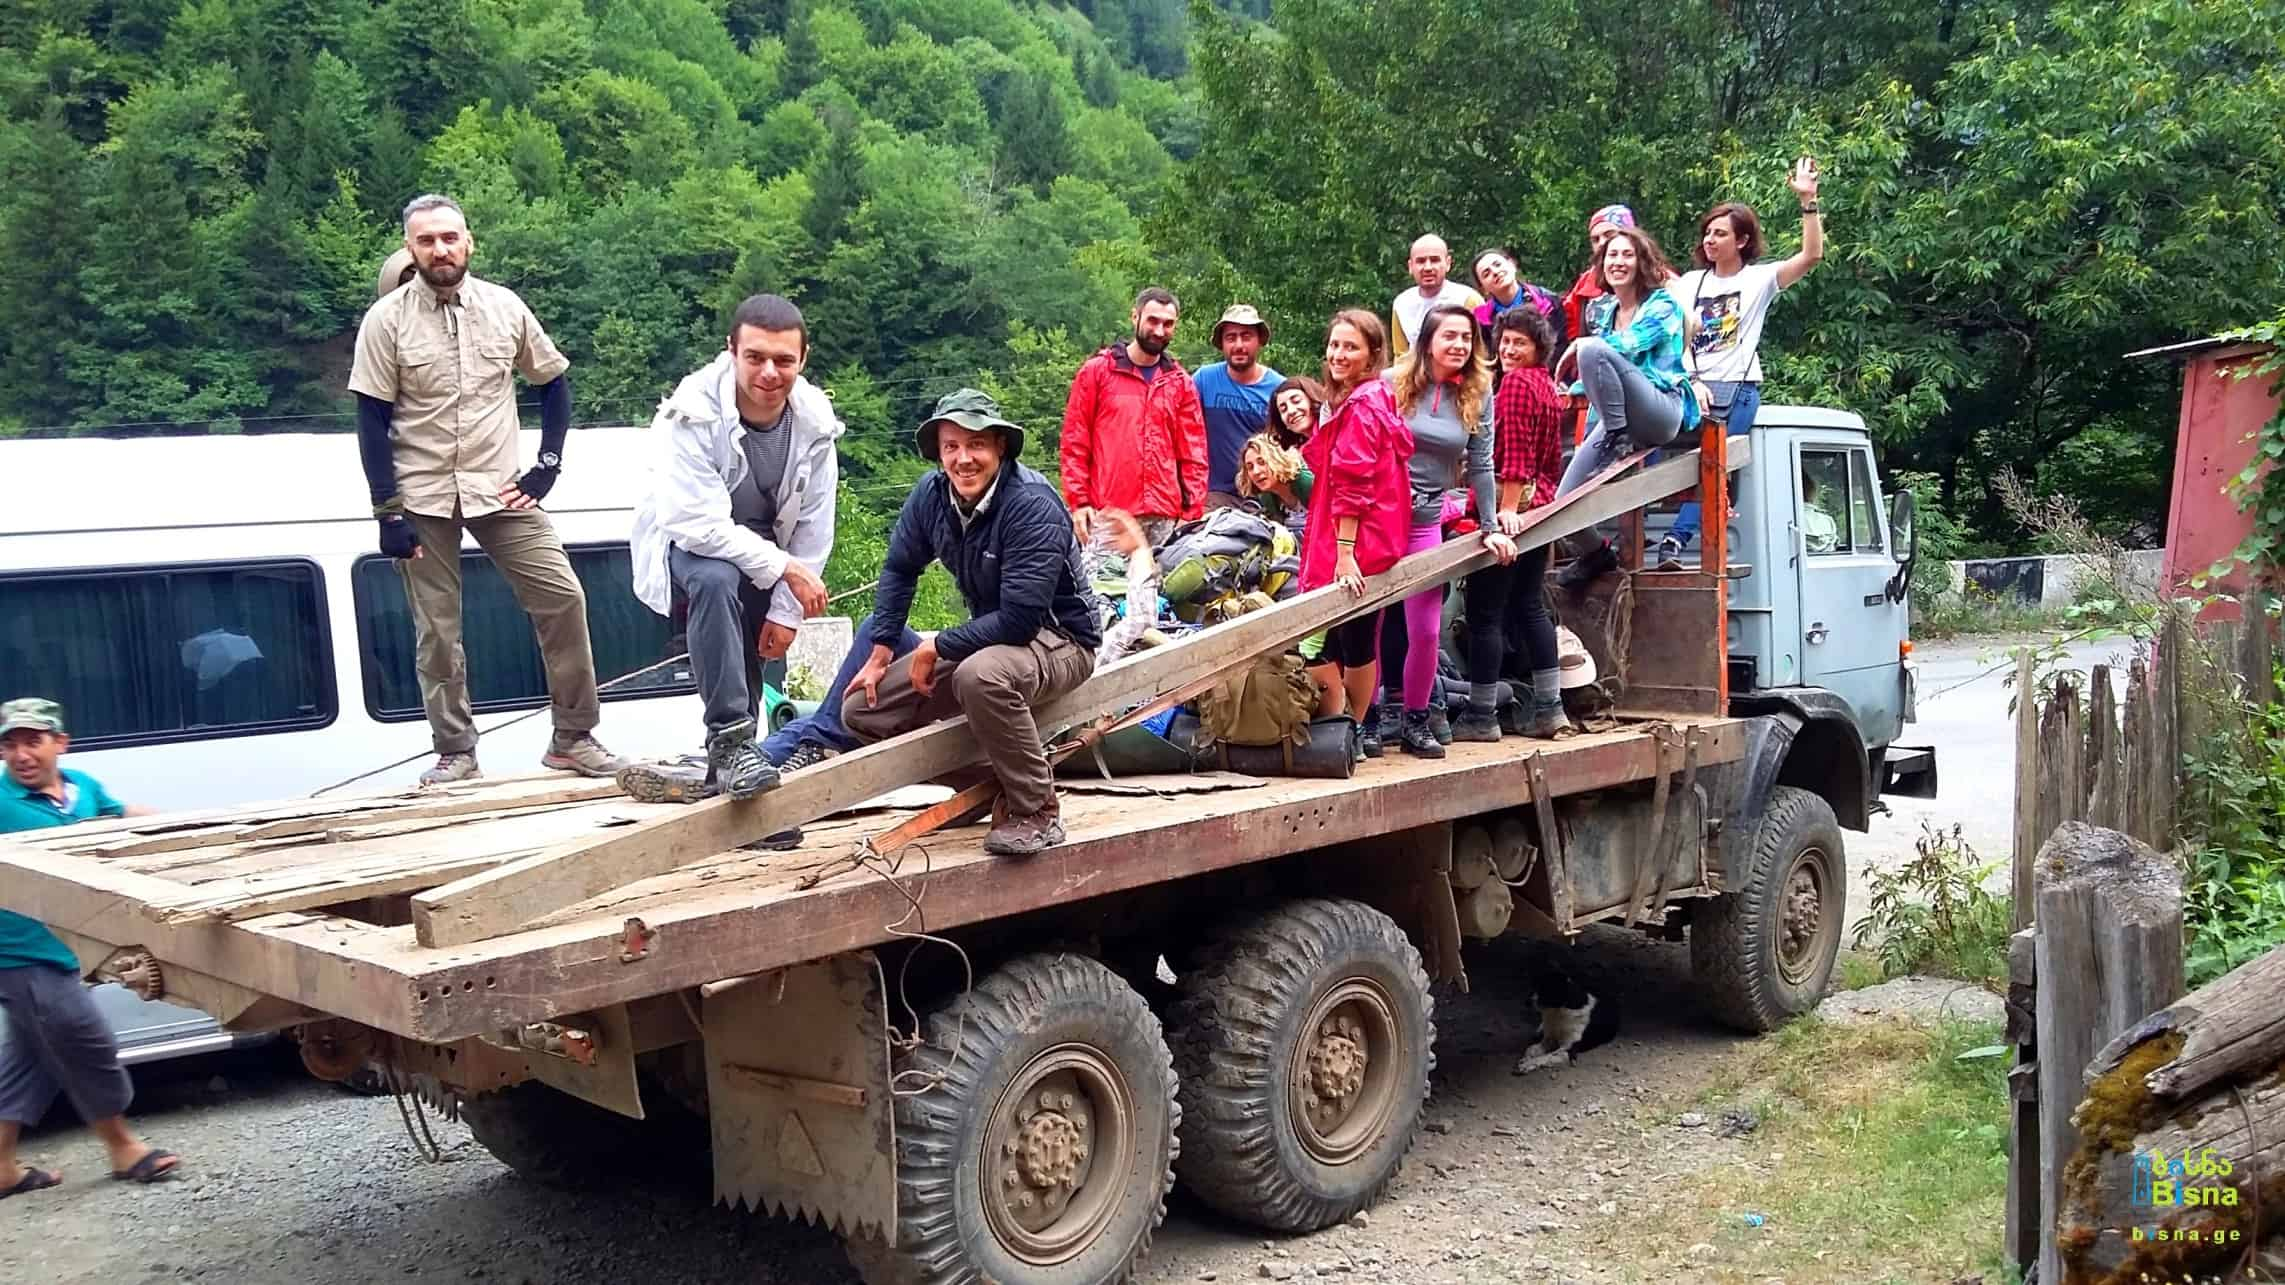 Bisna hiking group on a truck